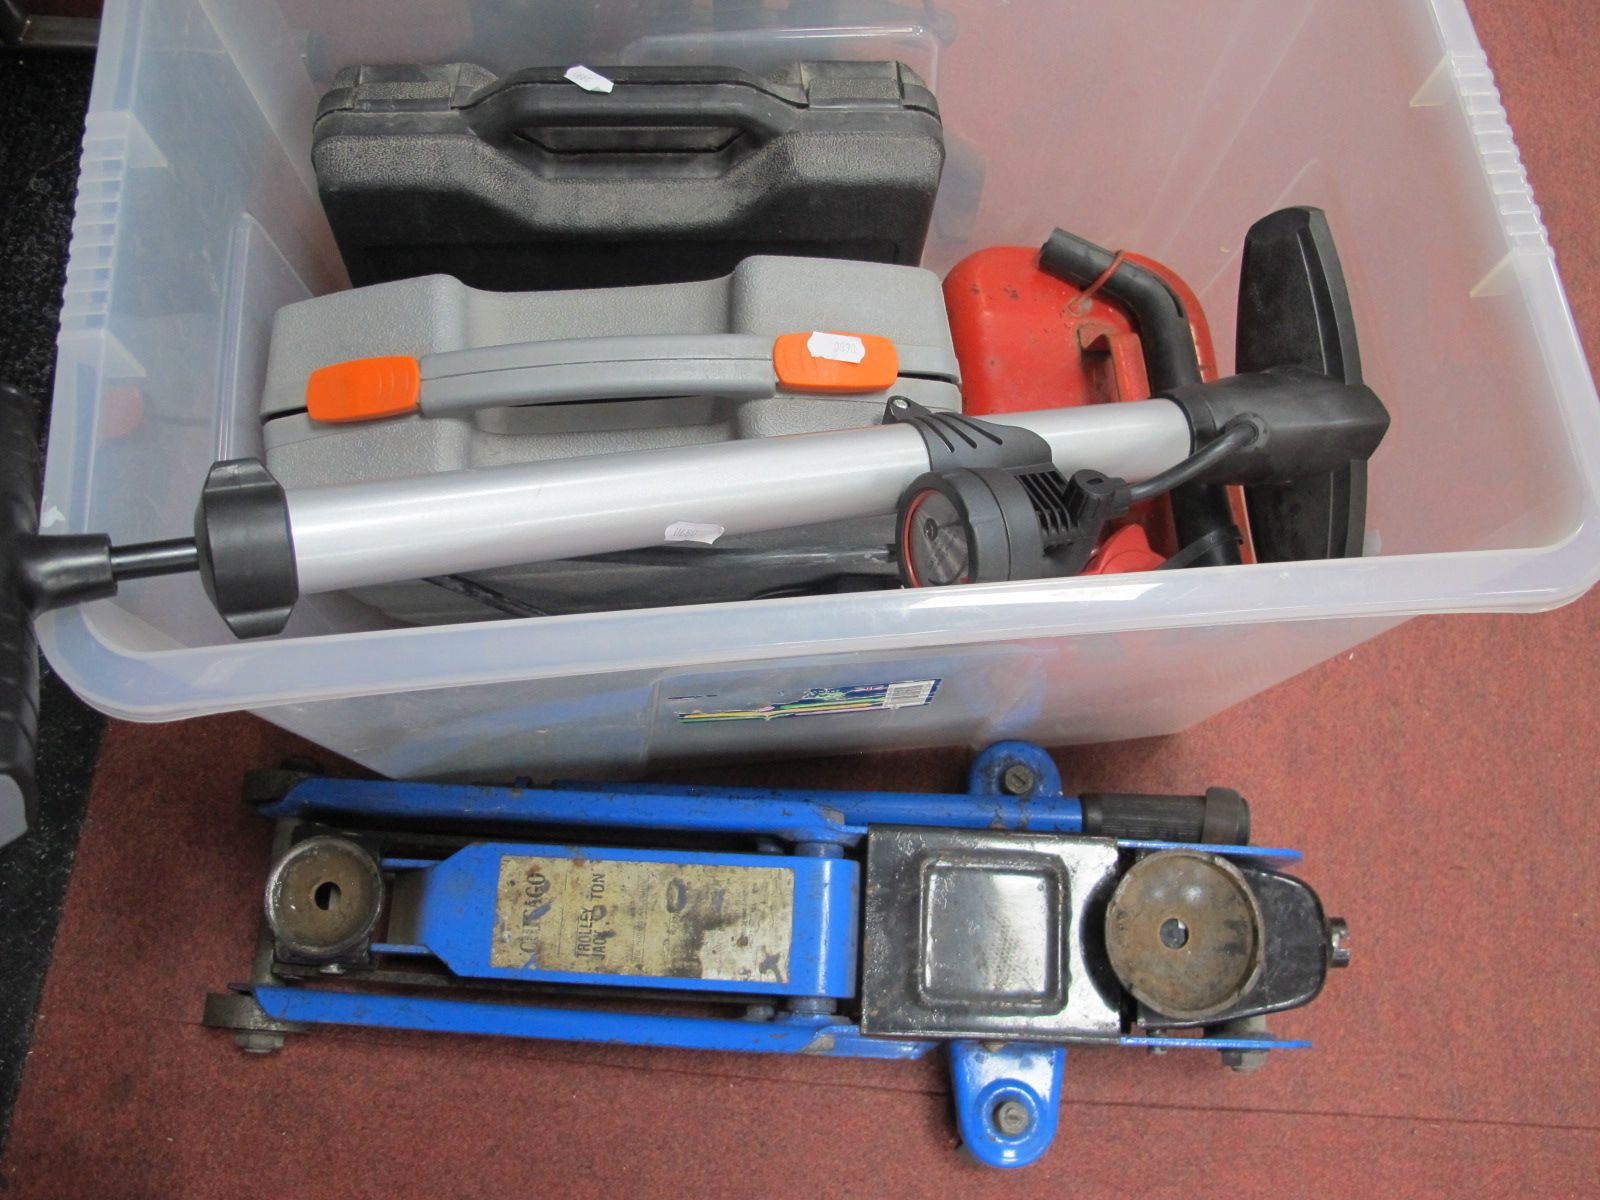 Challenger Xtreme Sander, Black & Decker saw, other tools petrol can:- One Box. Chicago trolley